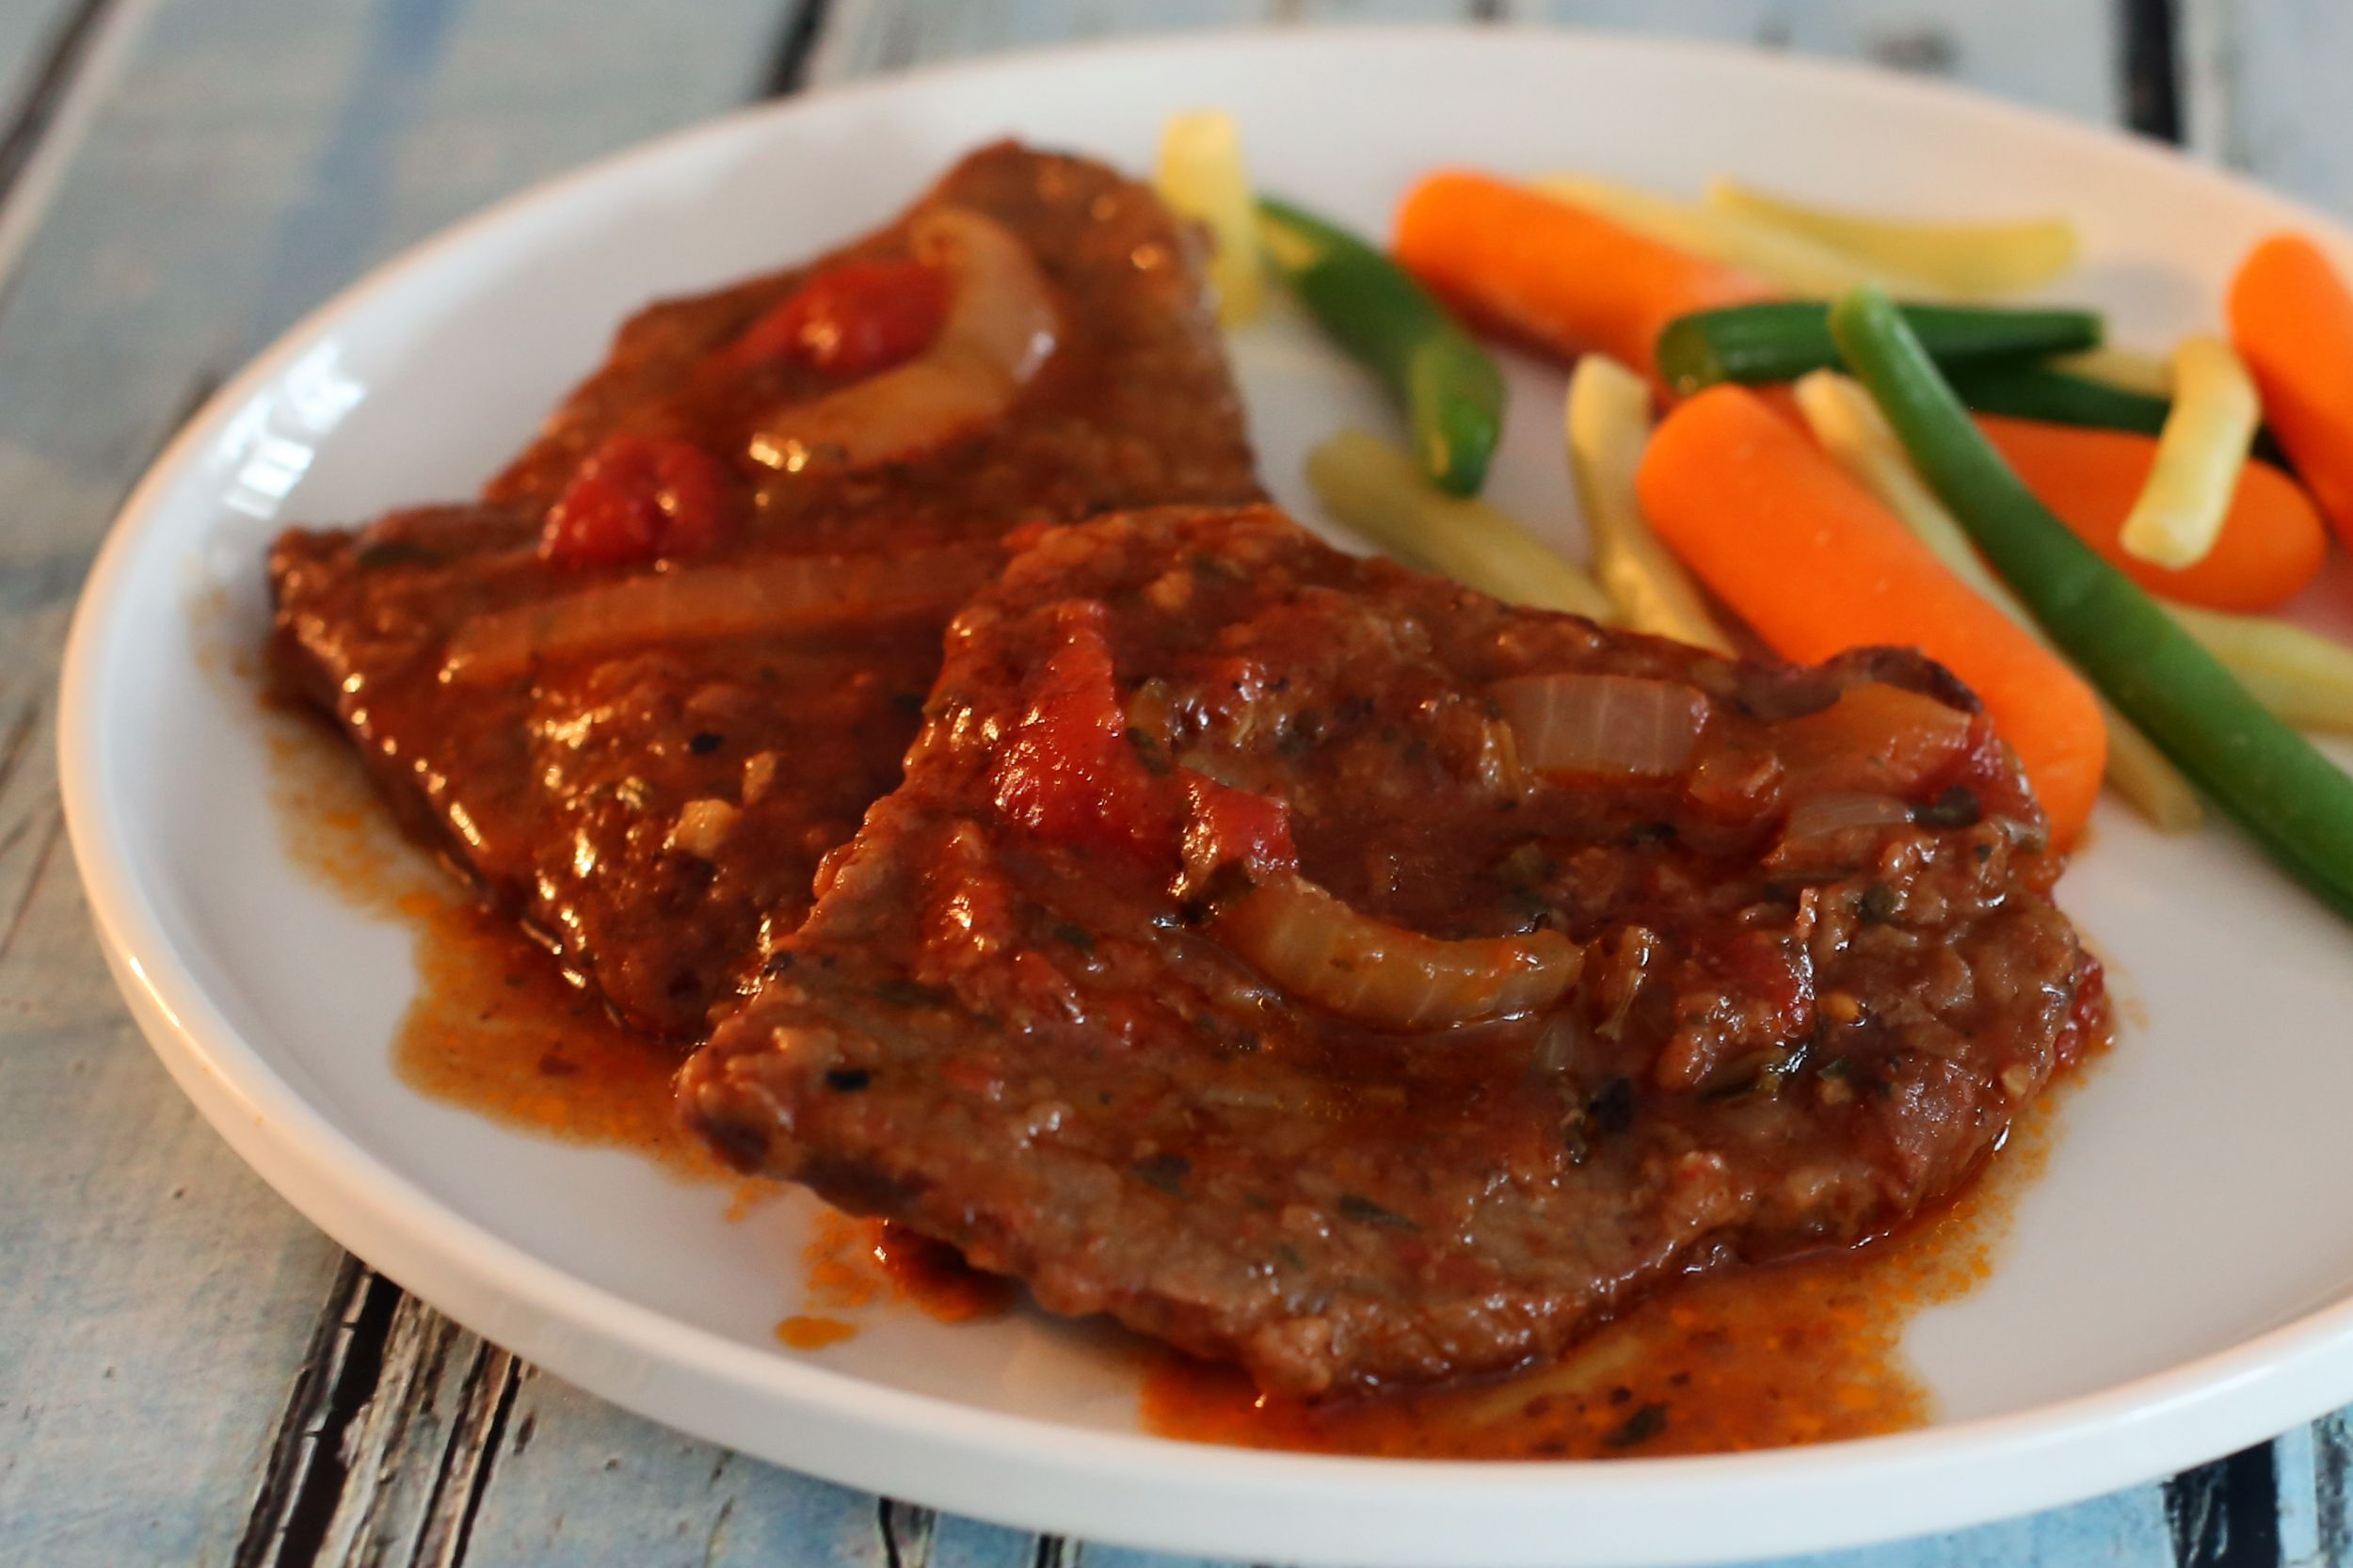 Swiss Steak with Round Steak and Stewed Tomatoes Recipe